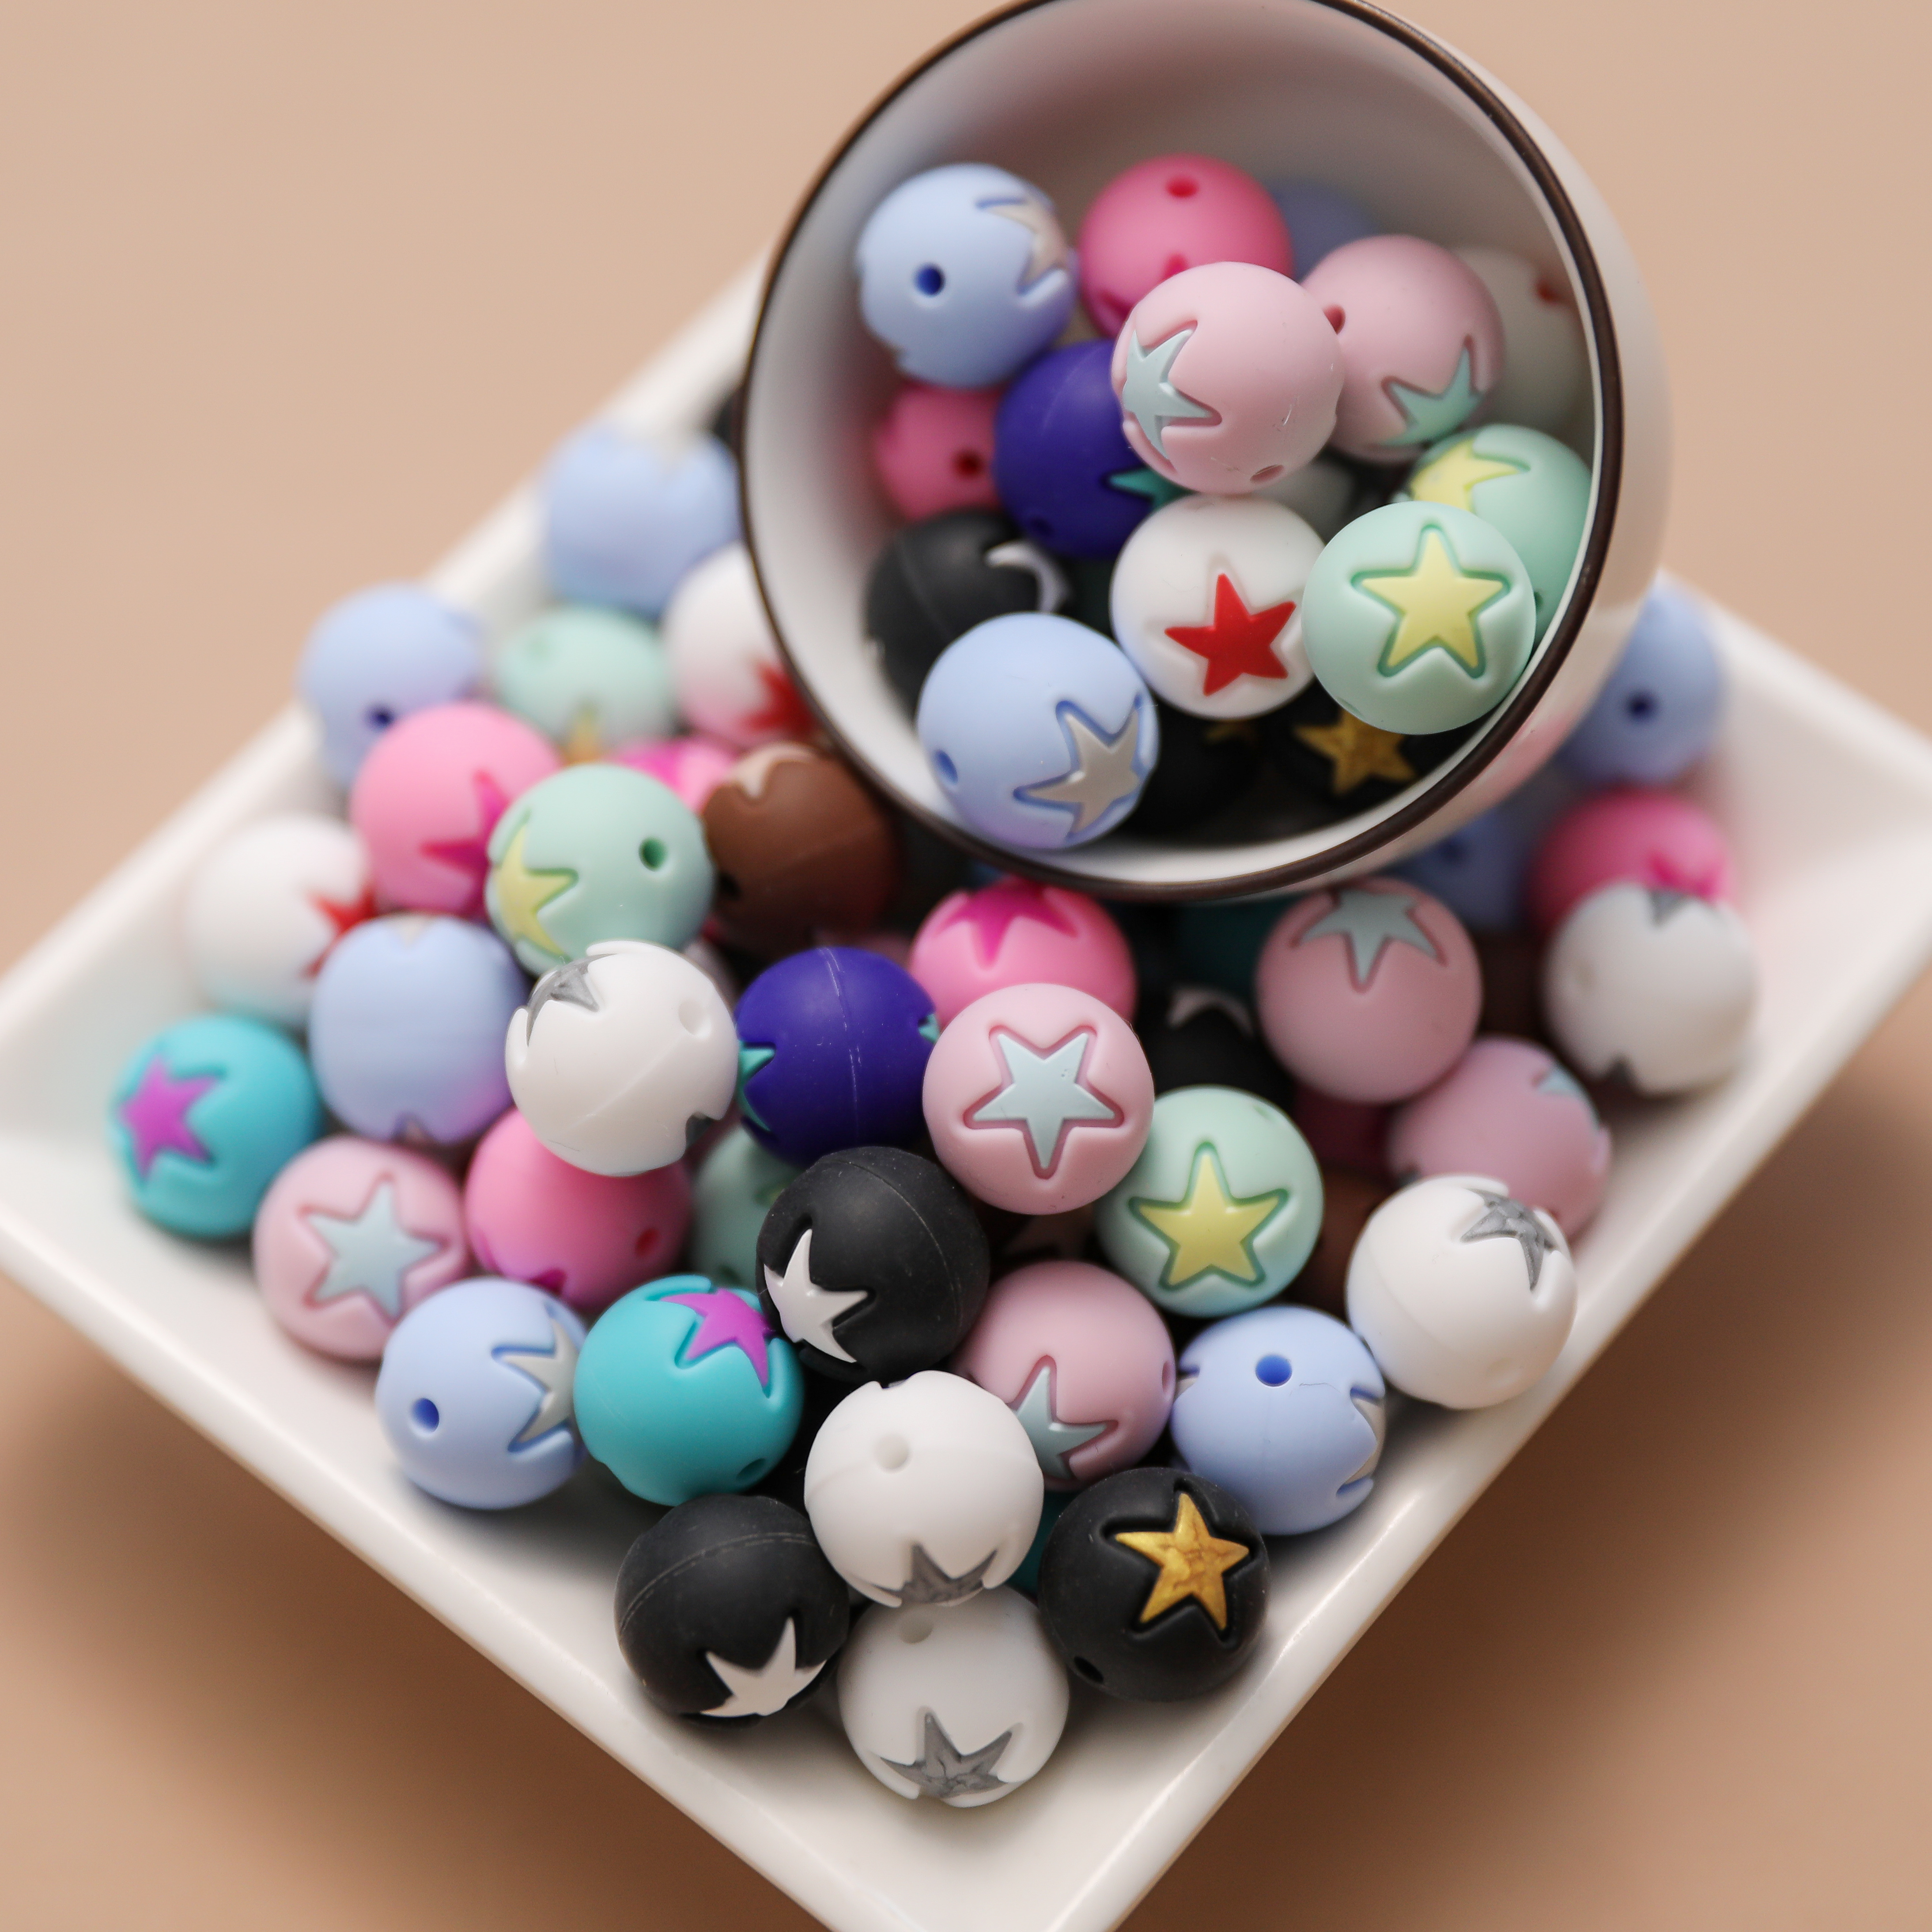 20 Pcs BPA Free Silicone Beads 15mm Baby Teether Silicone Beads DIY Food Grade Chewable Star Round Beads for Make Necklace